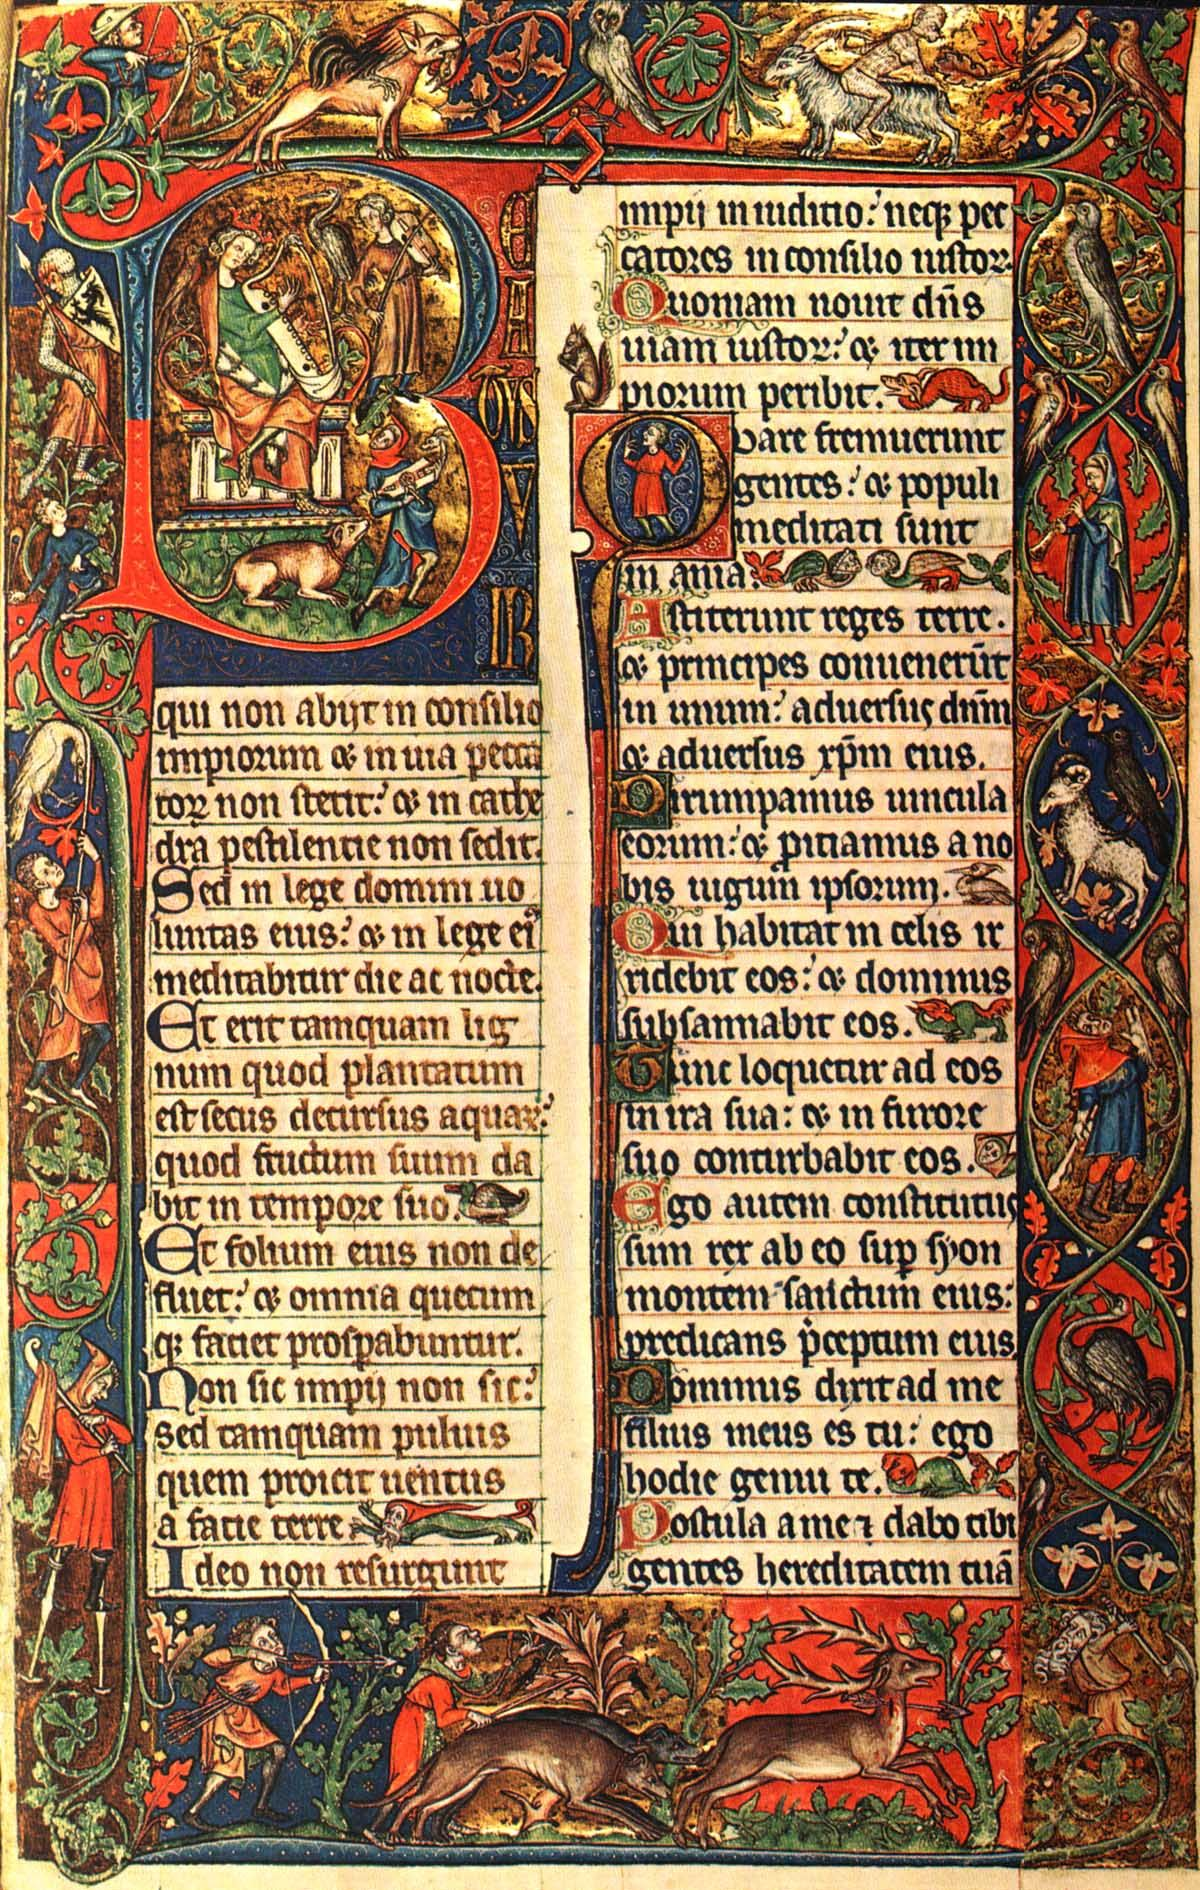 Image 105 Opening of Psalm 1 from the Peterborough Psalter now in Brussels (c.1300-1318)